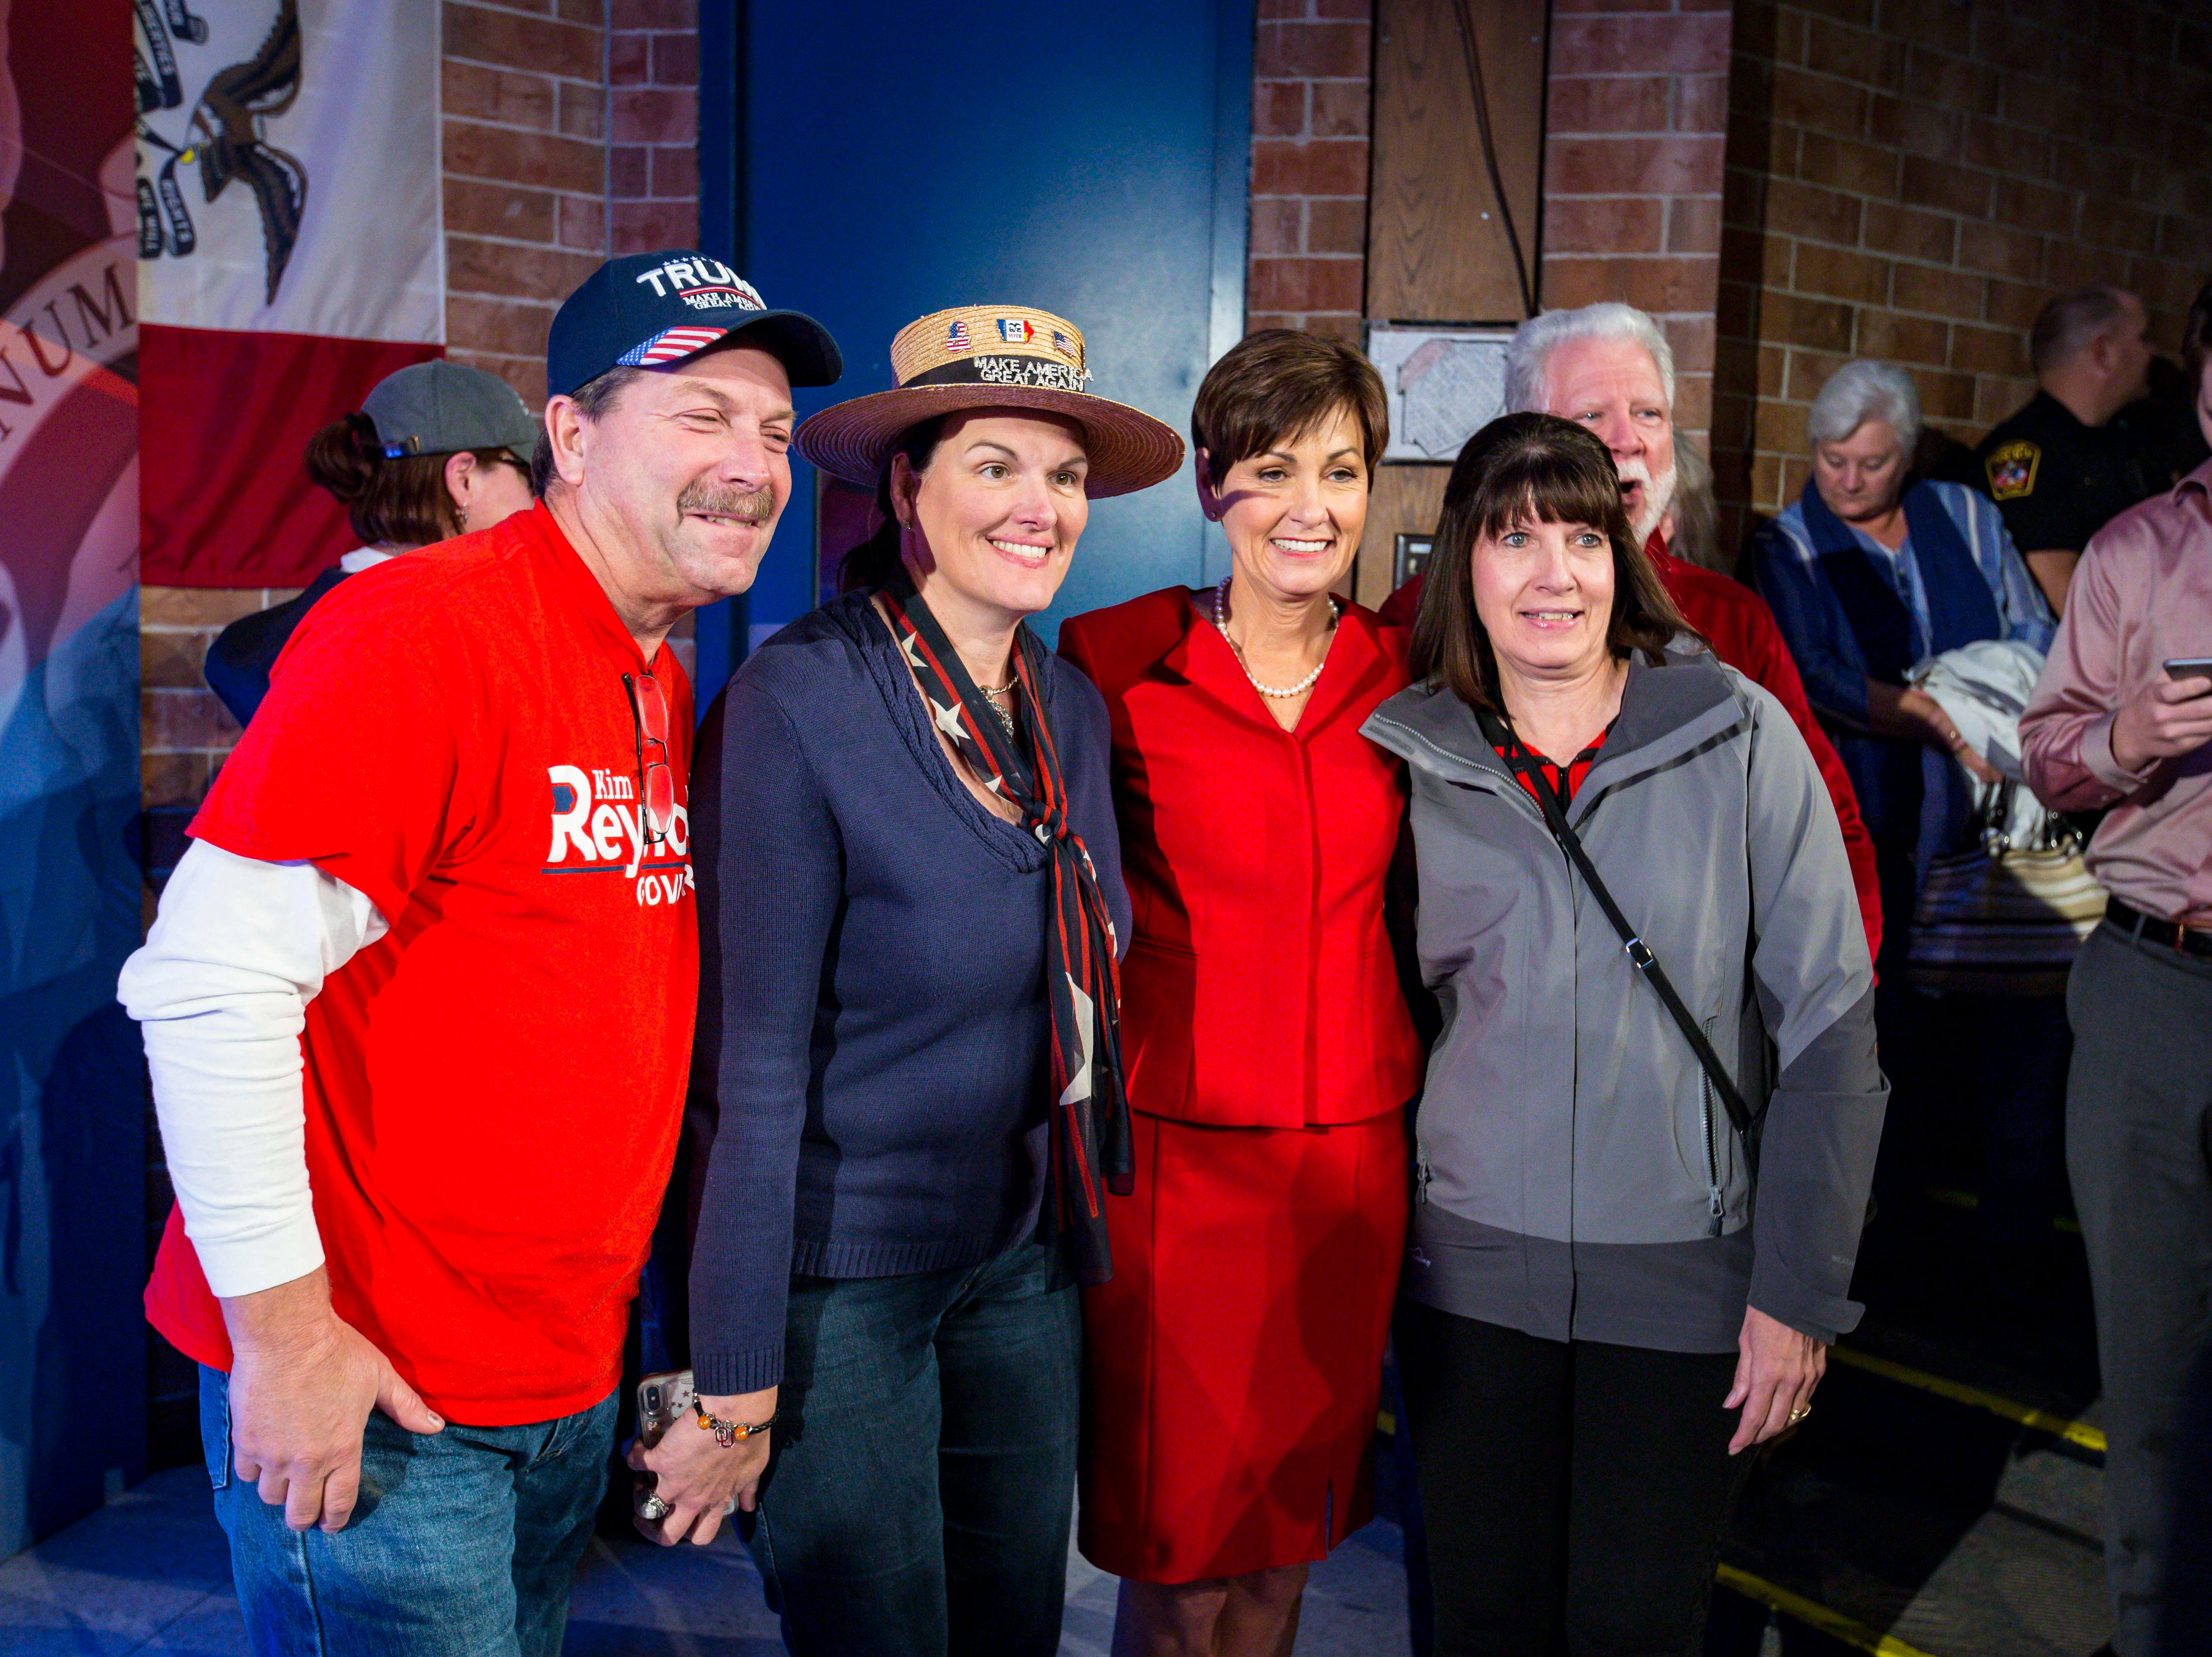 Republican Iowa Gov. Kim Reynolds takes pictures with family and friends after a debate hosted by the Des Moines Register and KCCI Wednesday, Oct. 10, 2018, at Des Moines Area Community College in Ankeny, Iowa.